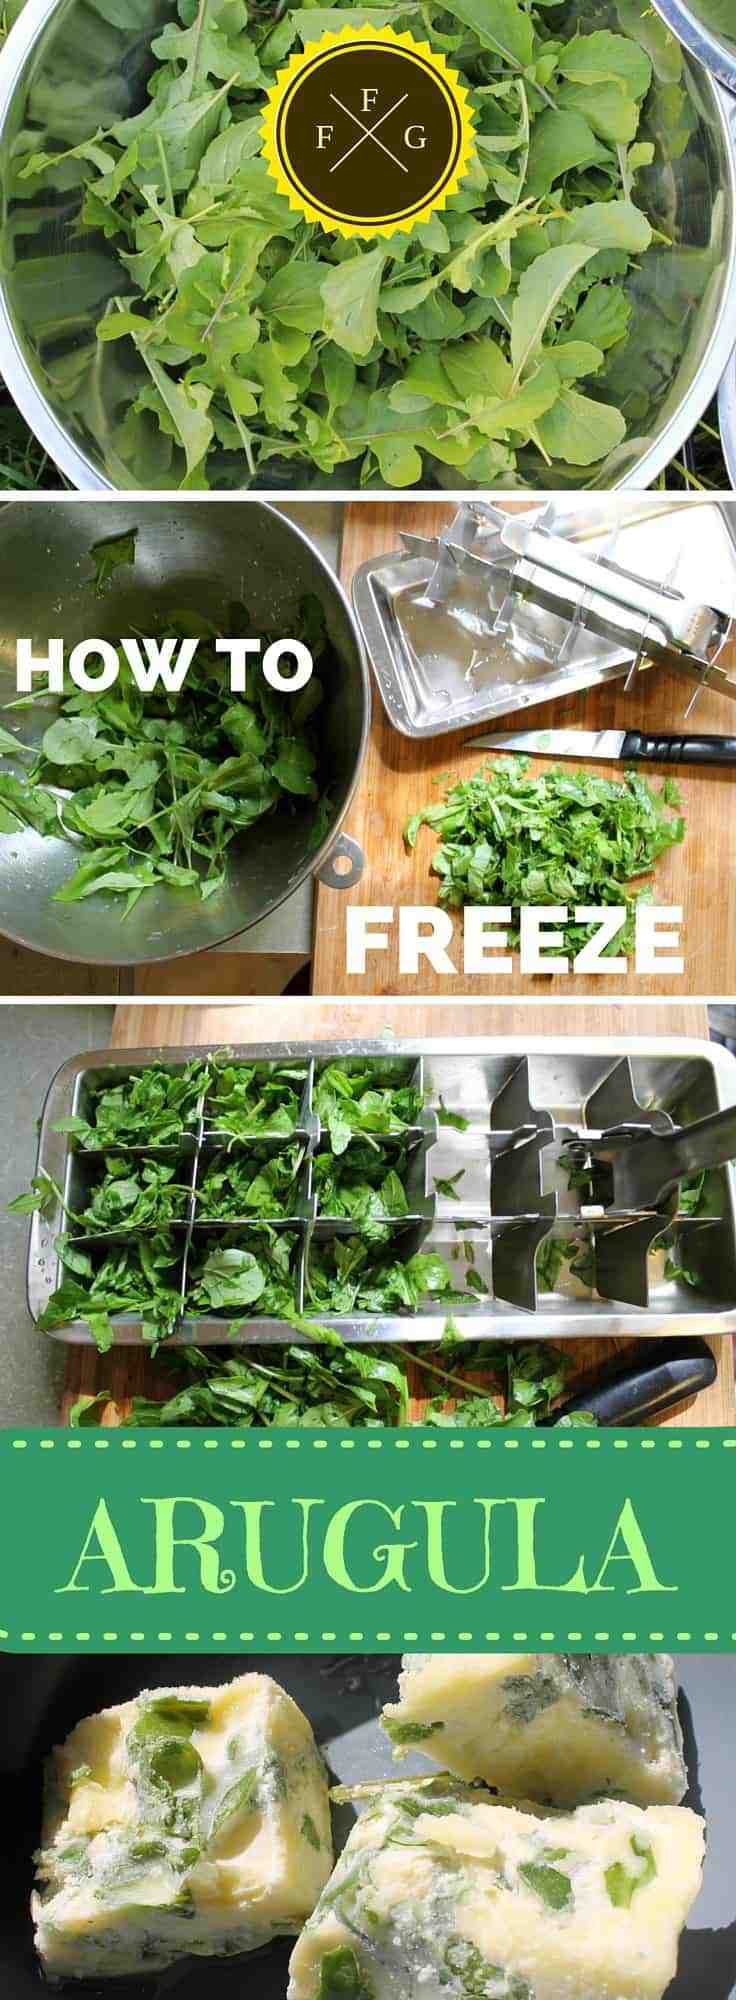 How to preserve arugula by freezing into olive oil cubes